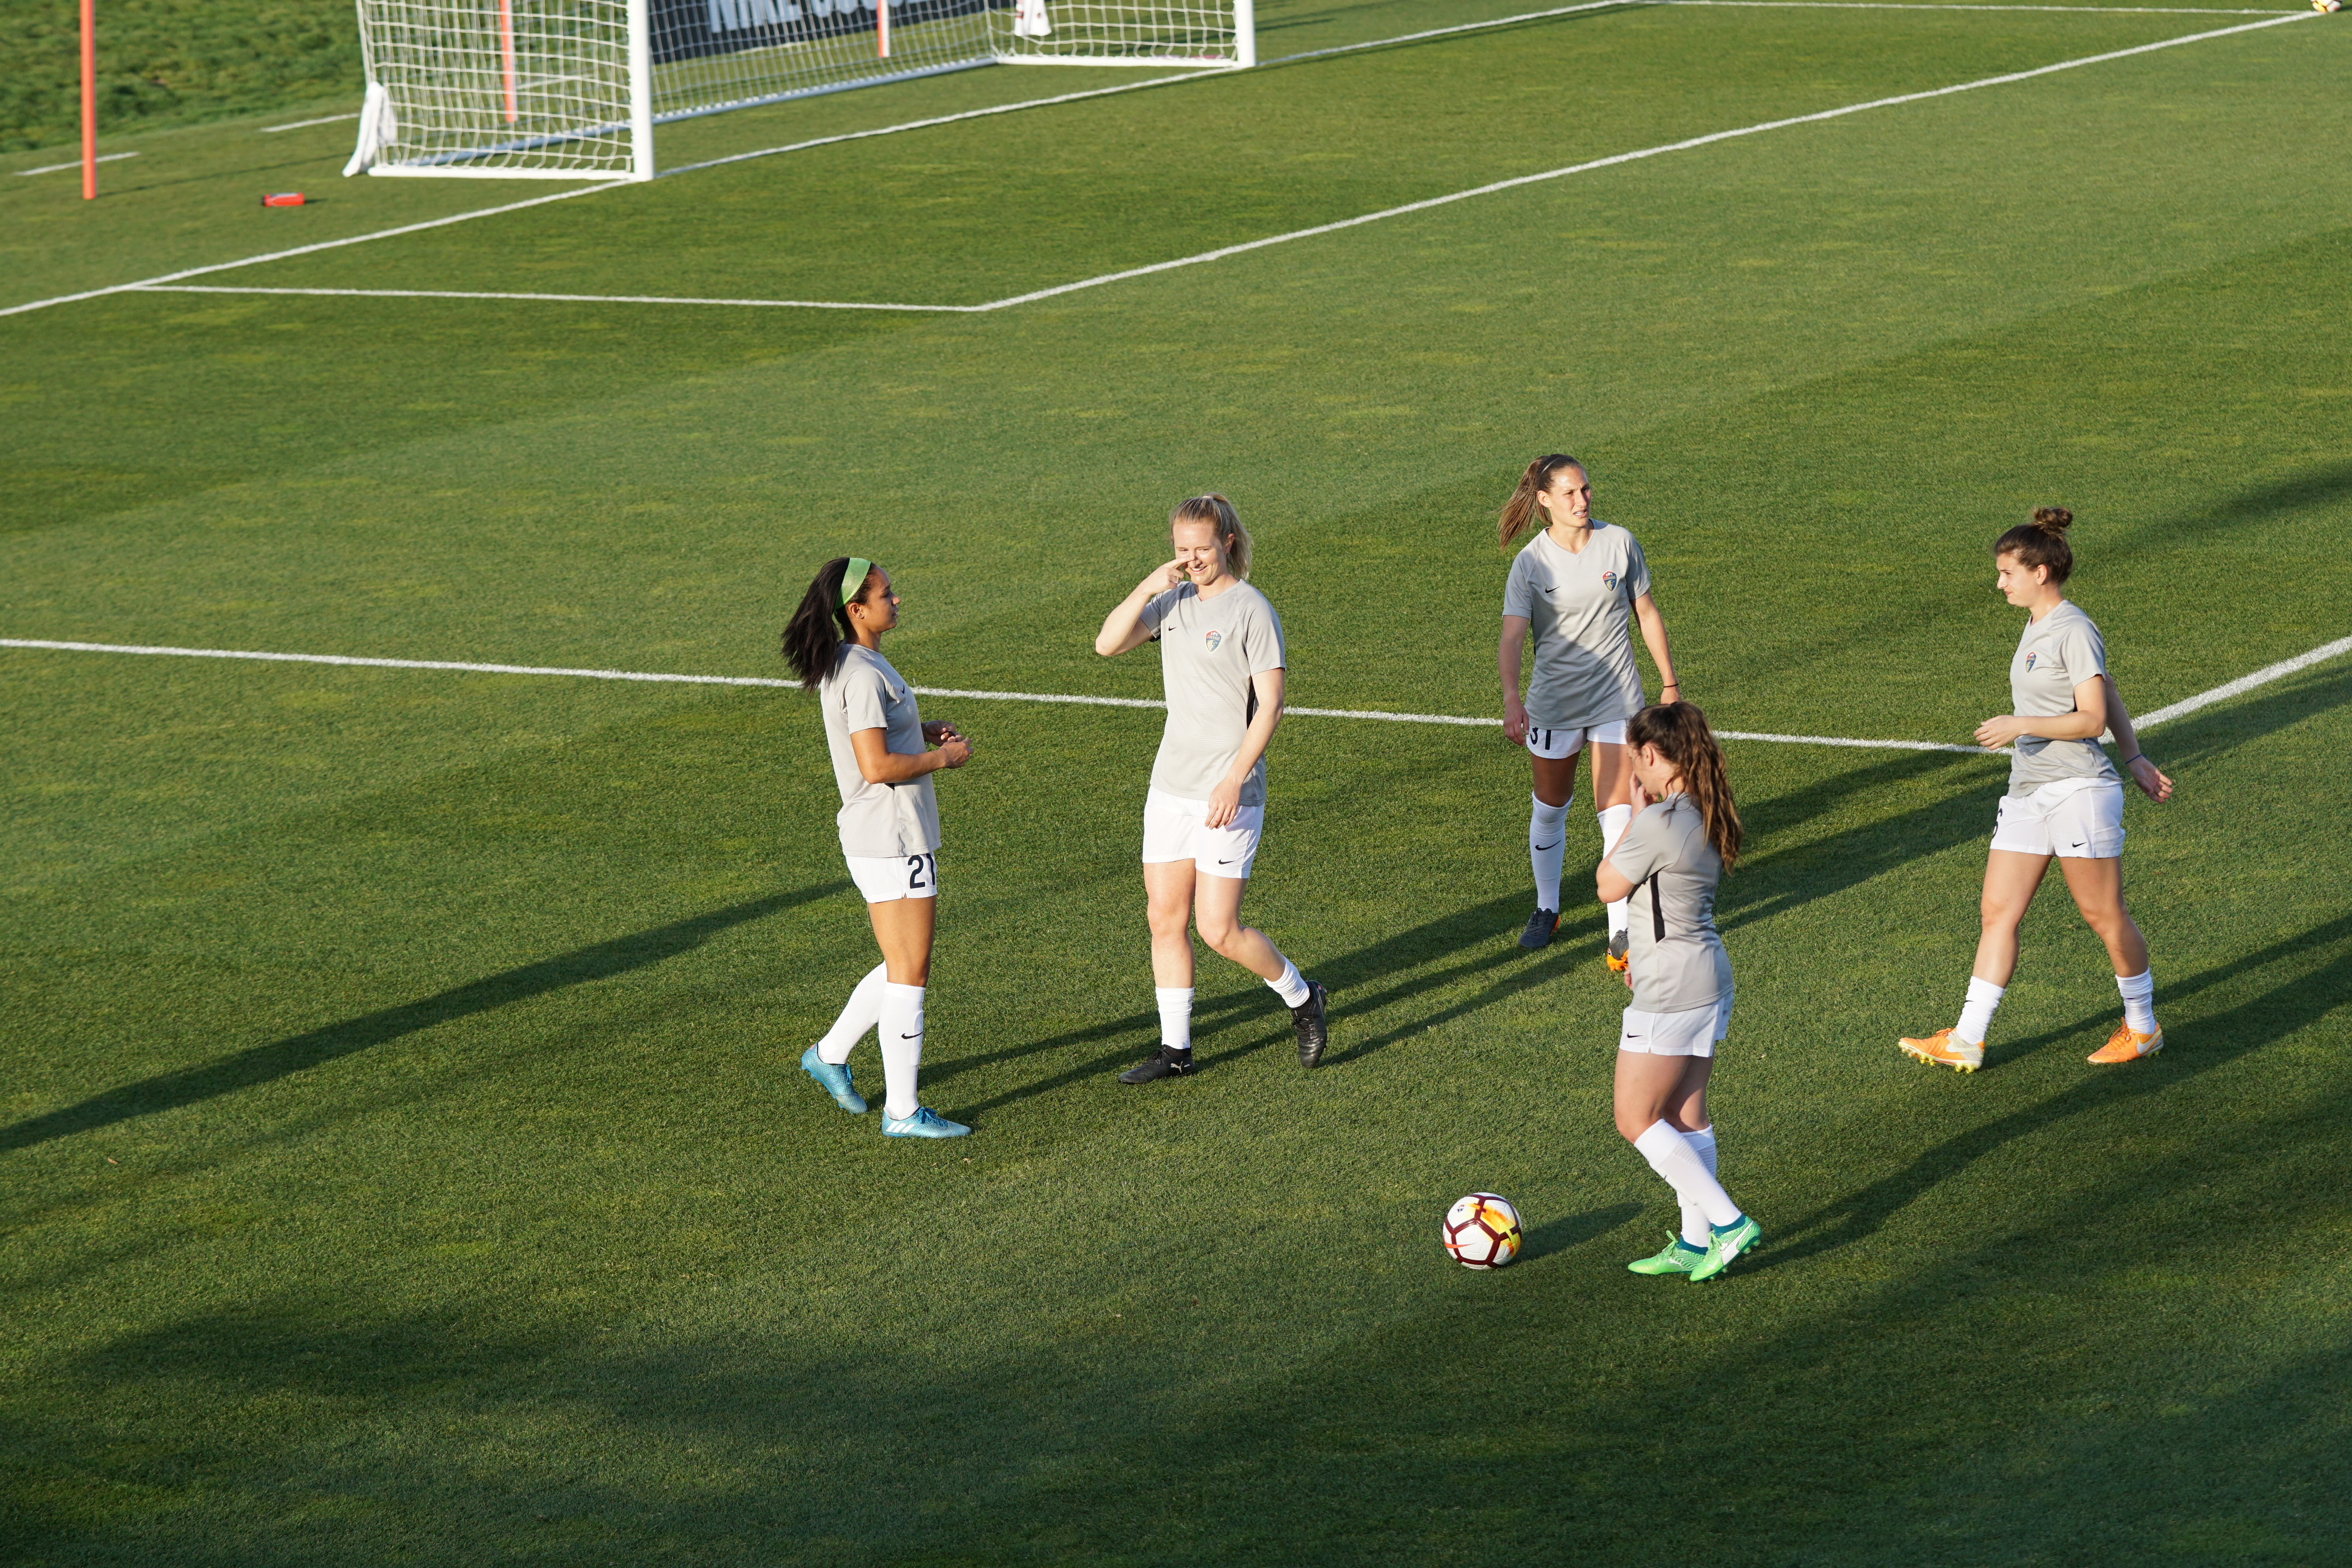 women playing soccer during daytime